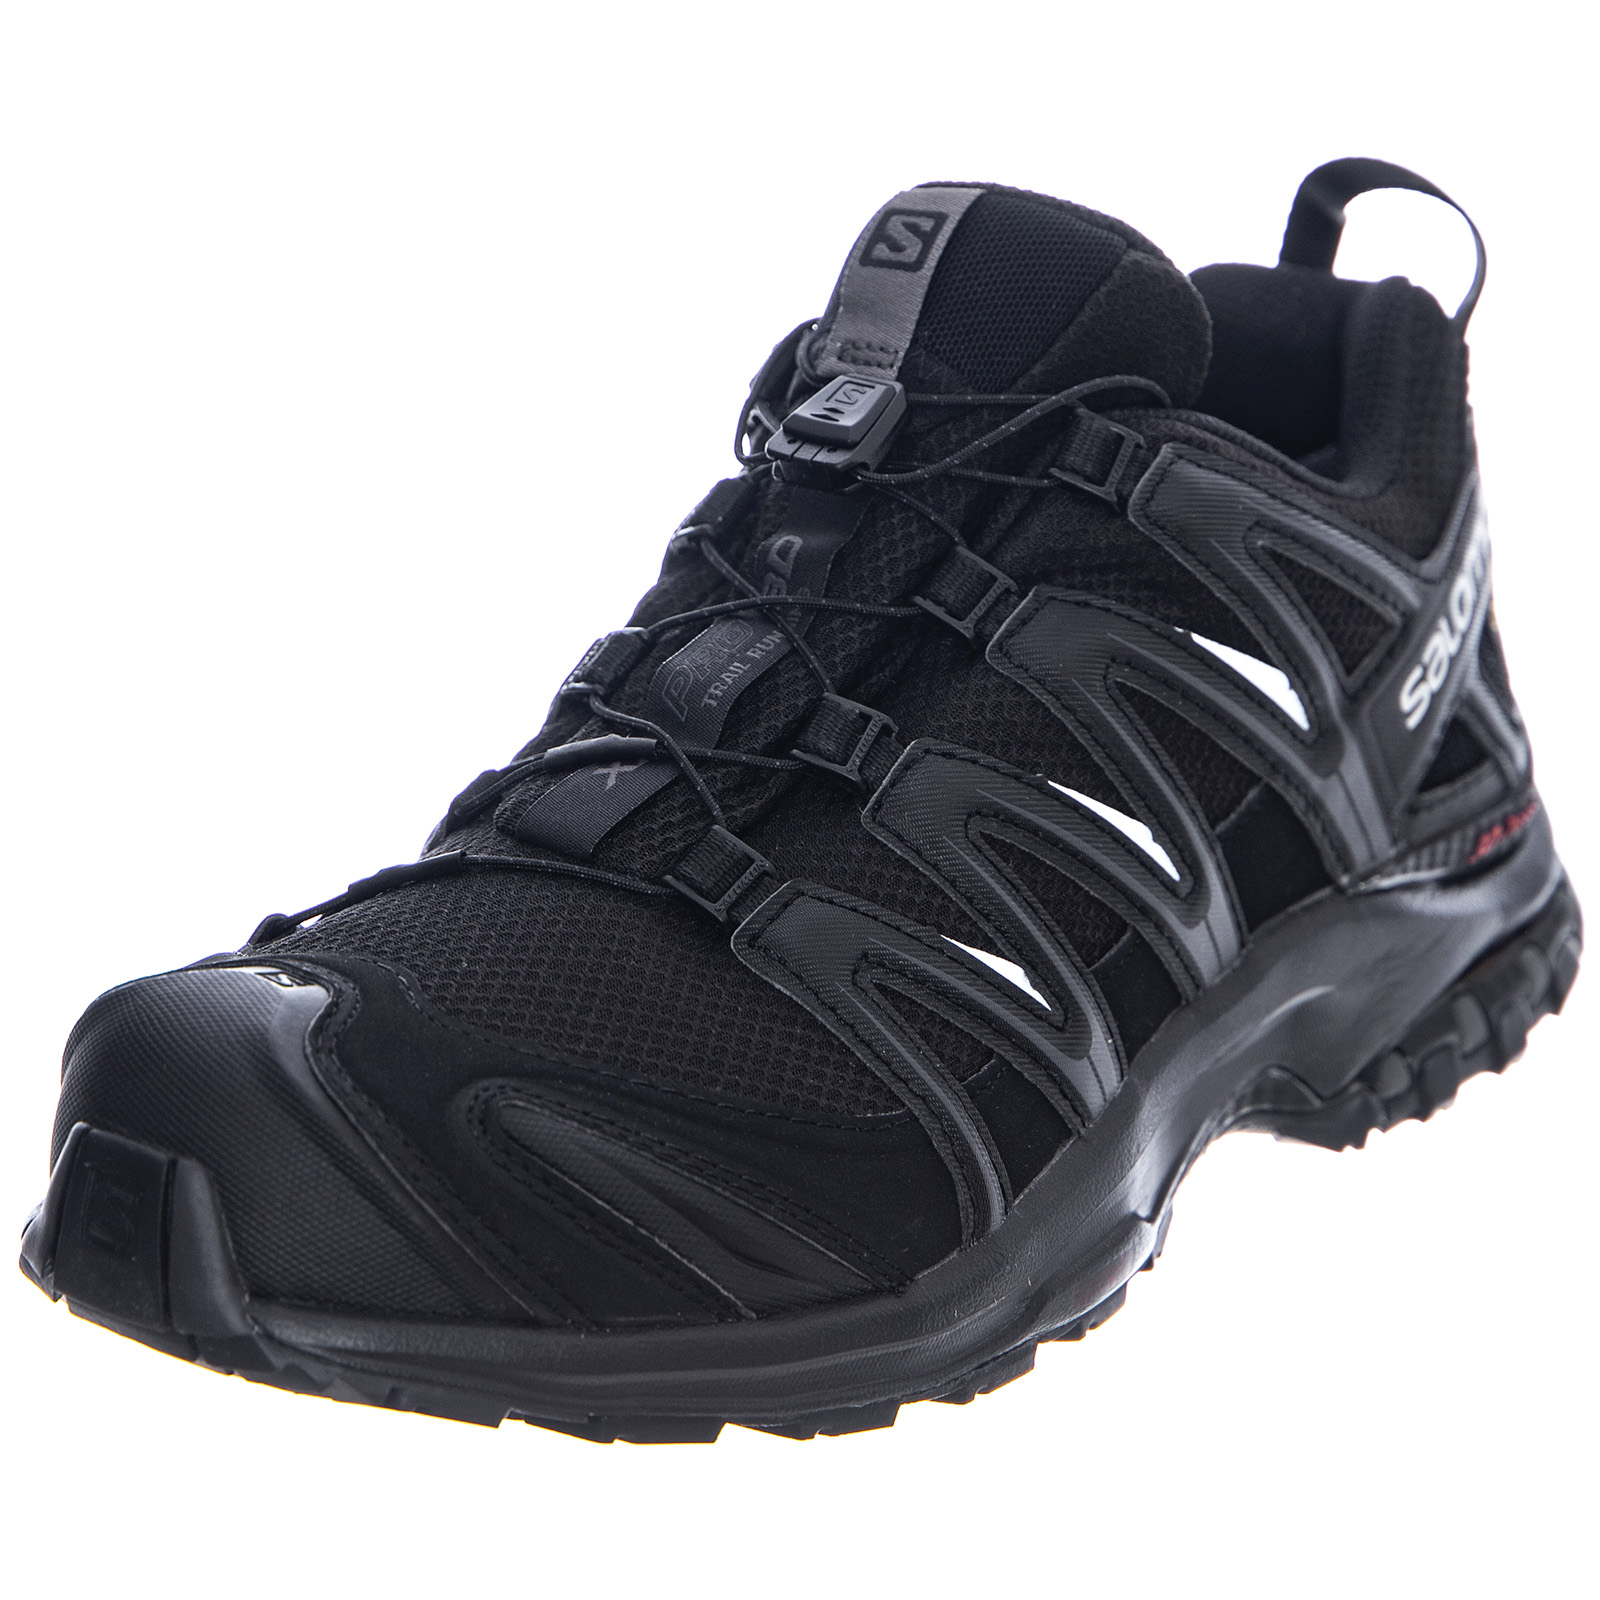 100% versandkostenfrei MENS FORCES GTX 3D PRO XA SALOMON